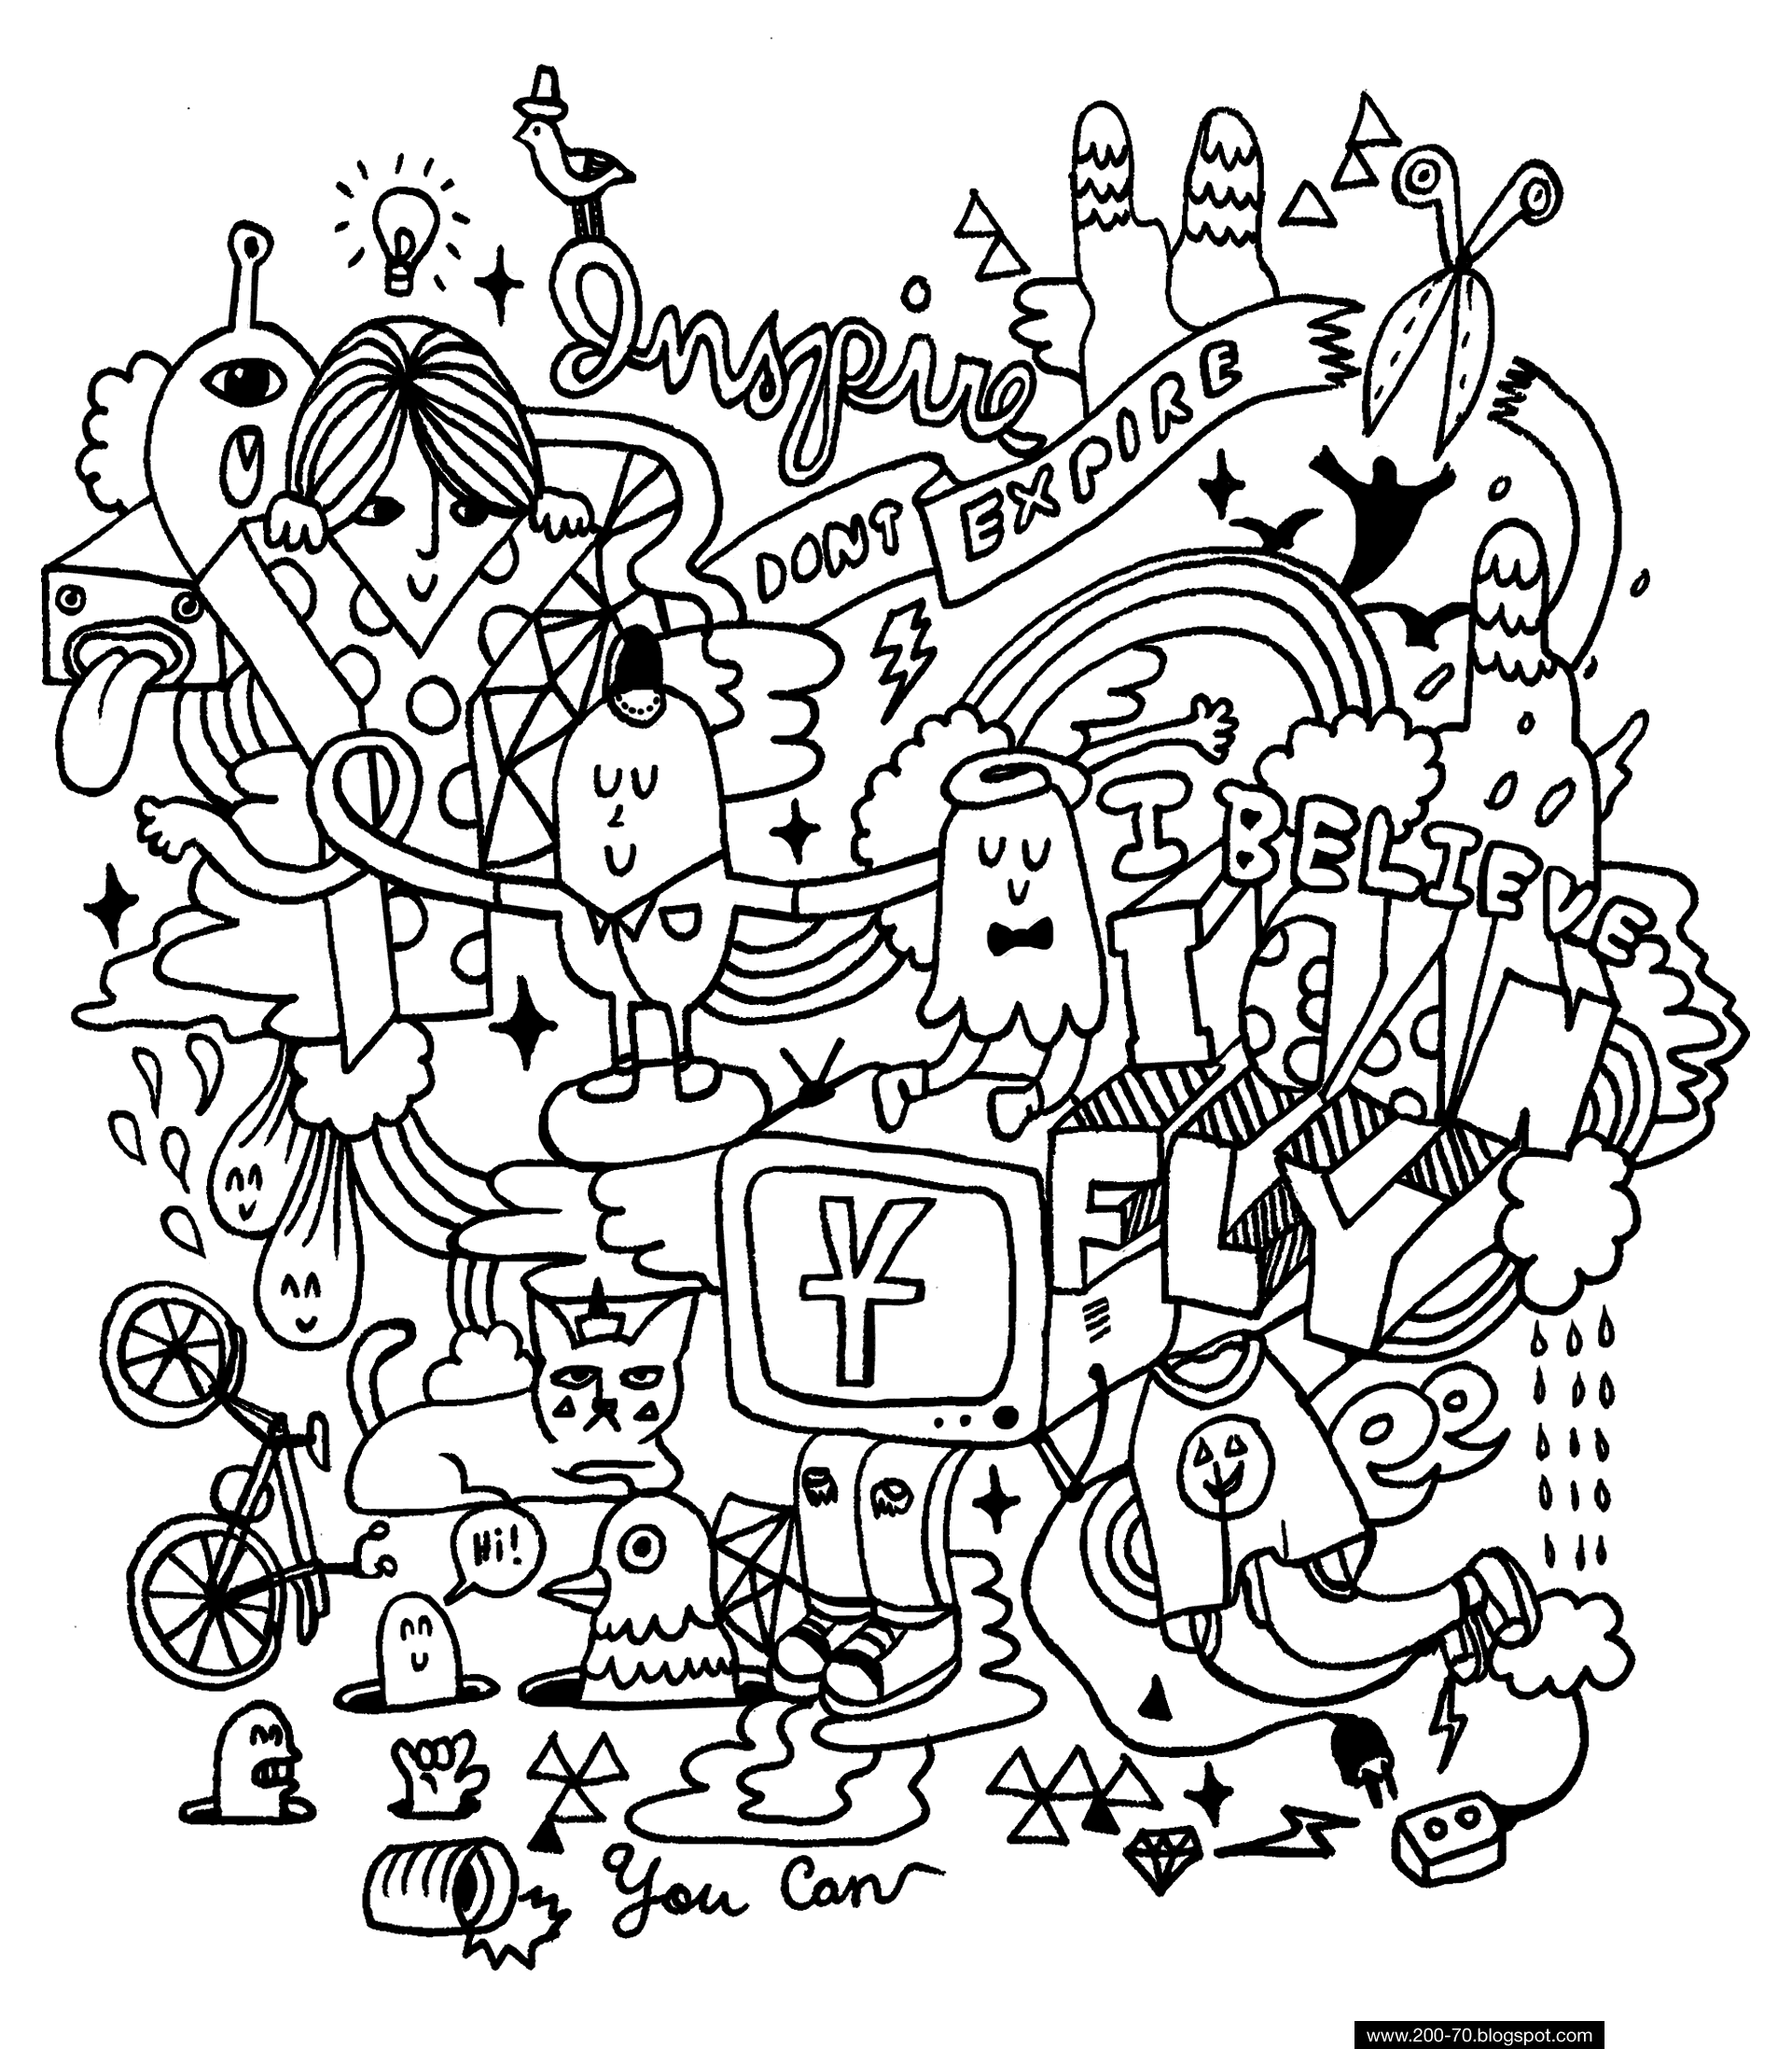 Fun coloring for Kids and Adults, A rainy day delight